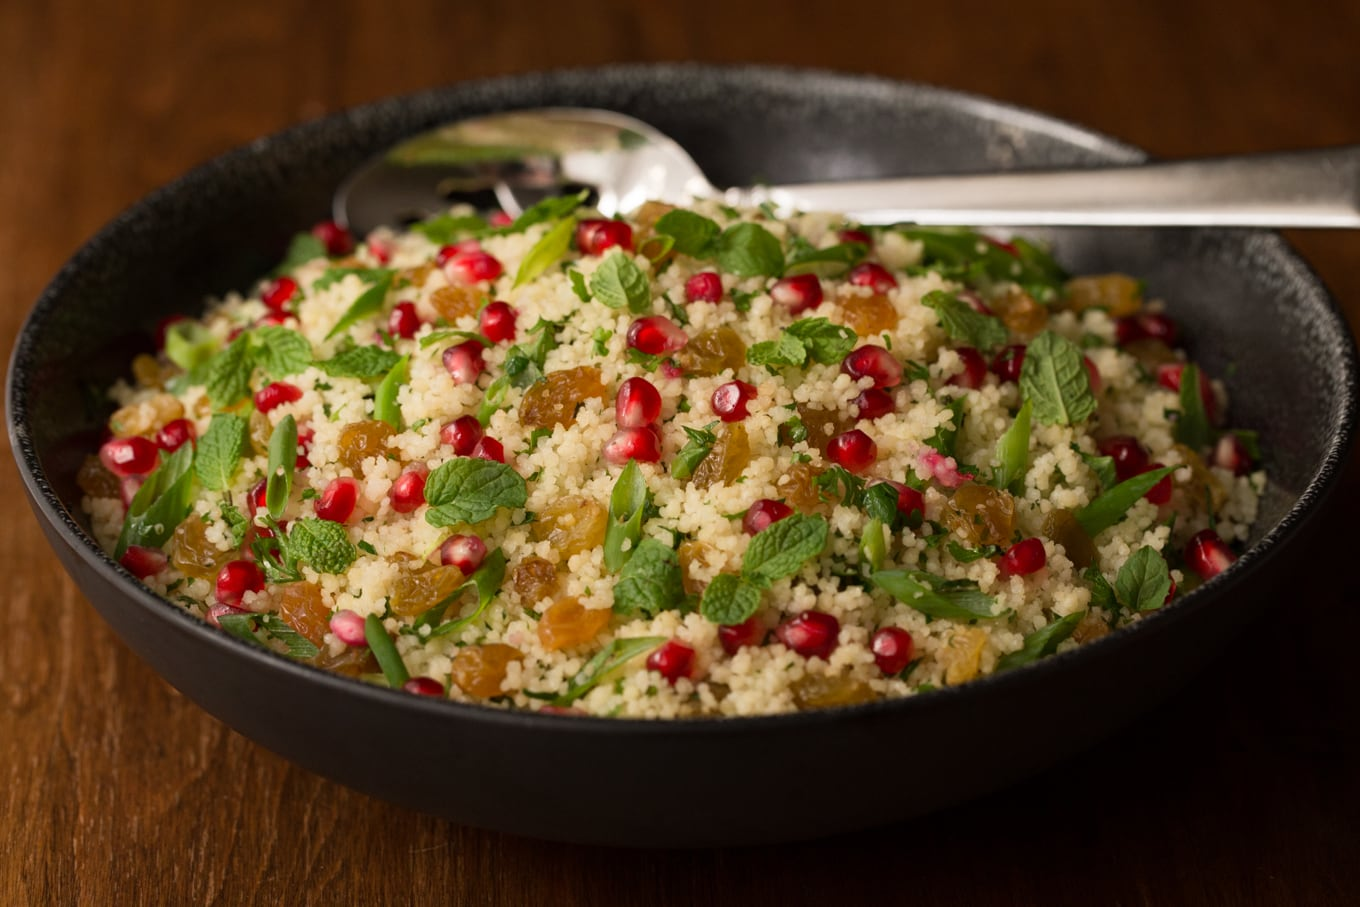 Photo of a black bowl of Pomegranate Parsley Couscous Salad on a wood table.